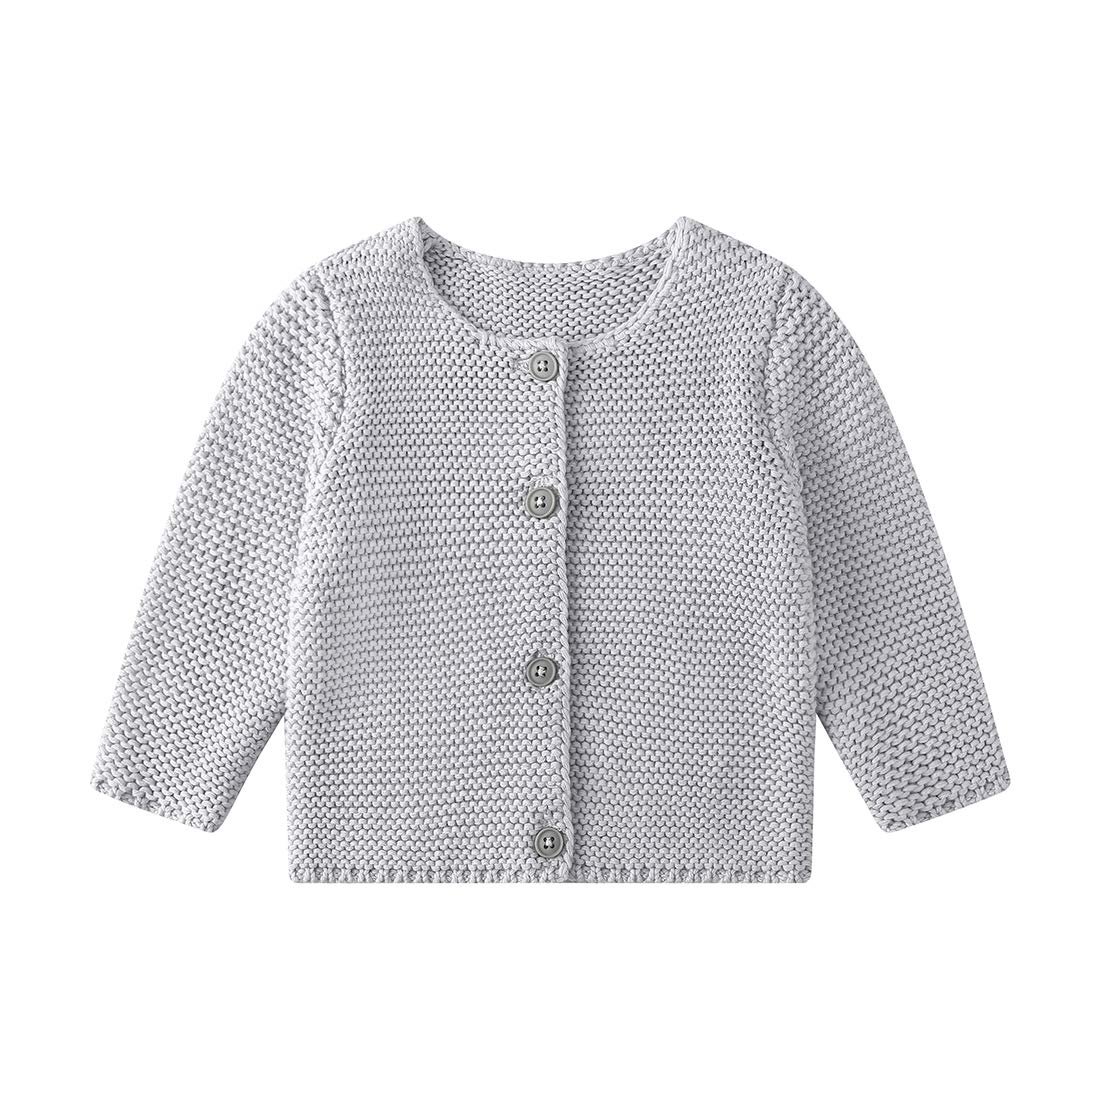 Baby Girls\' Long Sleeve Knitted Cardigan Sweaters Toddler Button-Down Cotton Coat Outerwear 71YA6xIRD9L